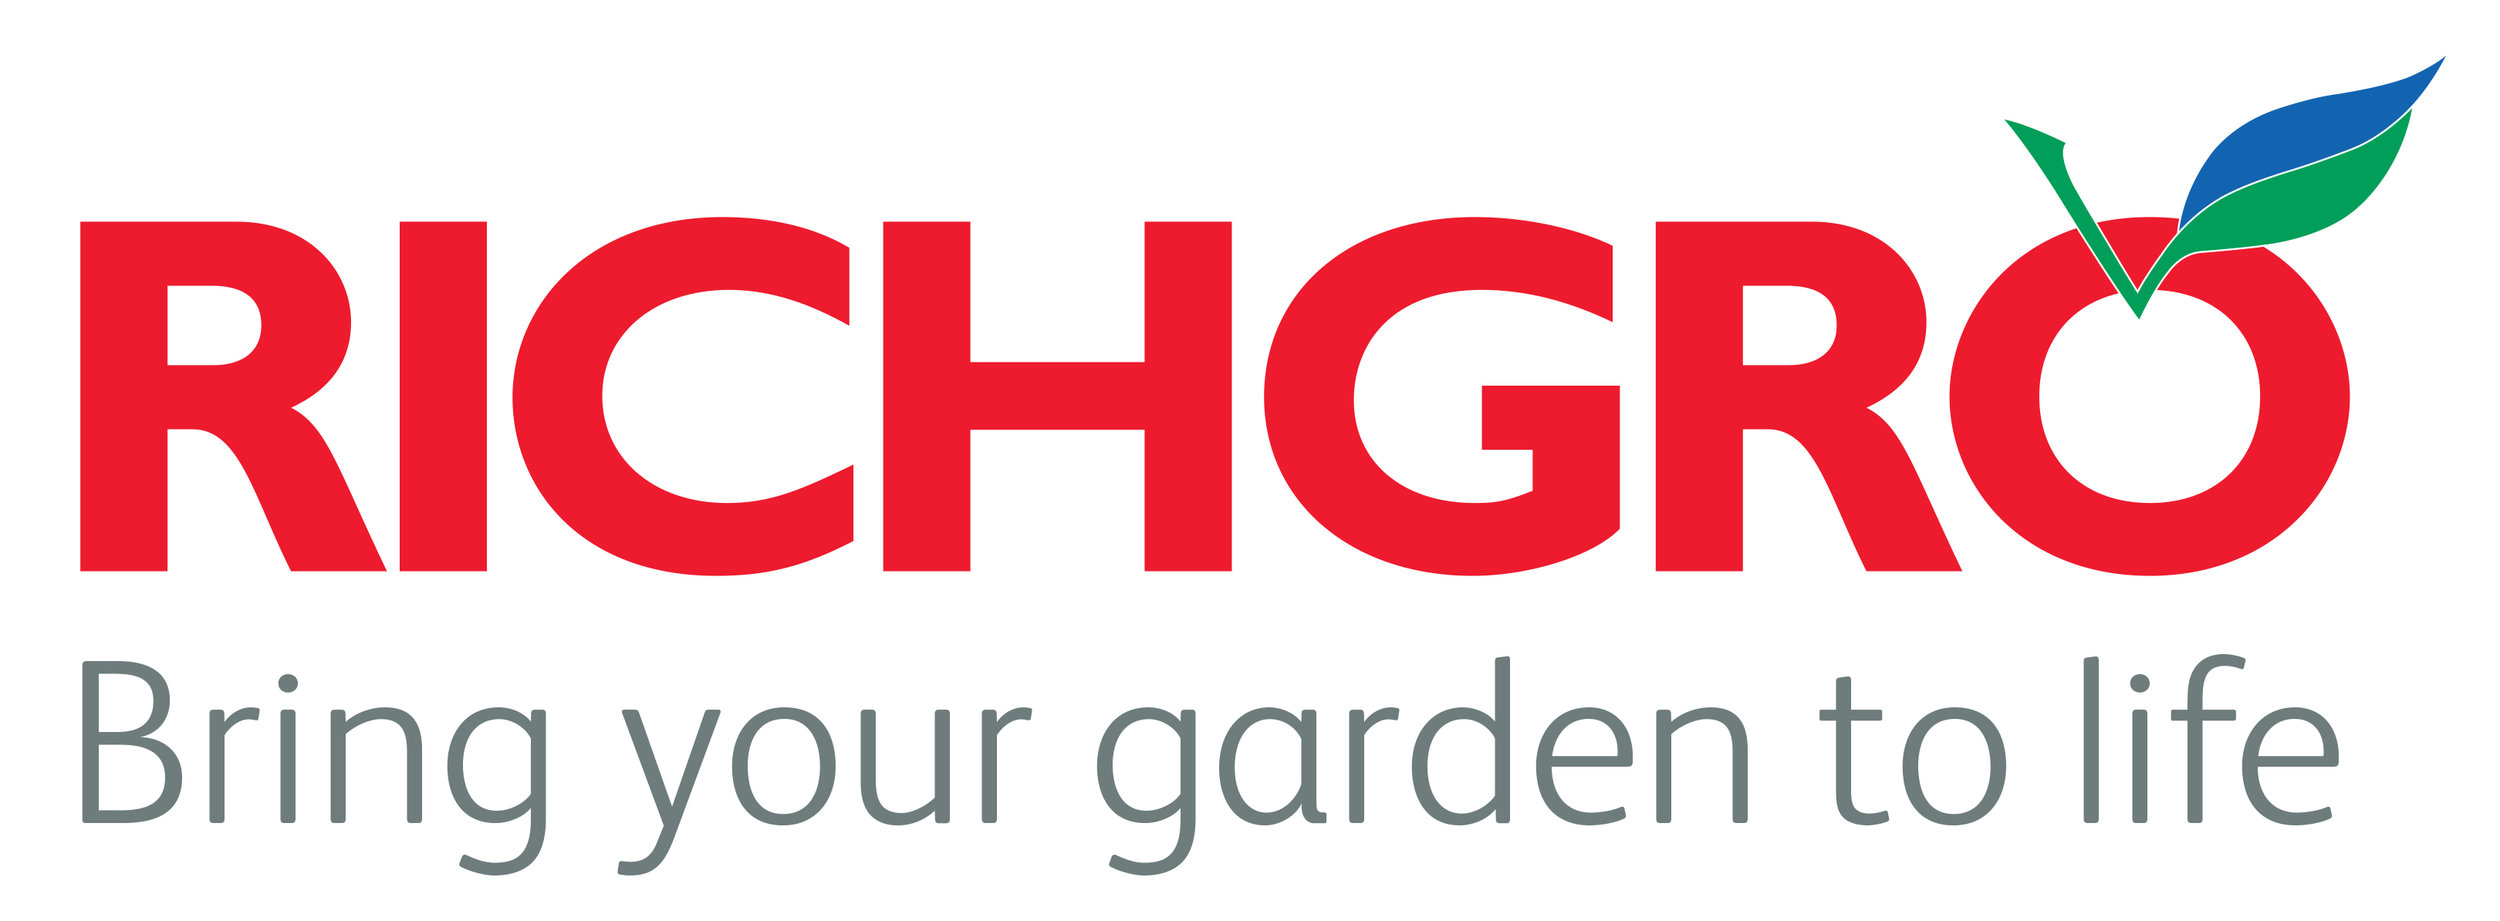 Richgro-logo-with-tagline-hi-res-jpeg.jpg